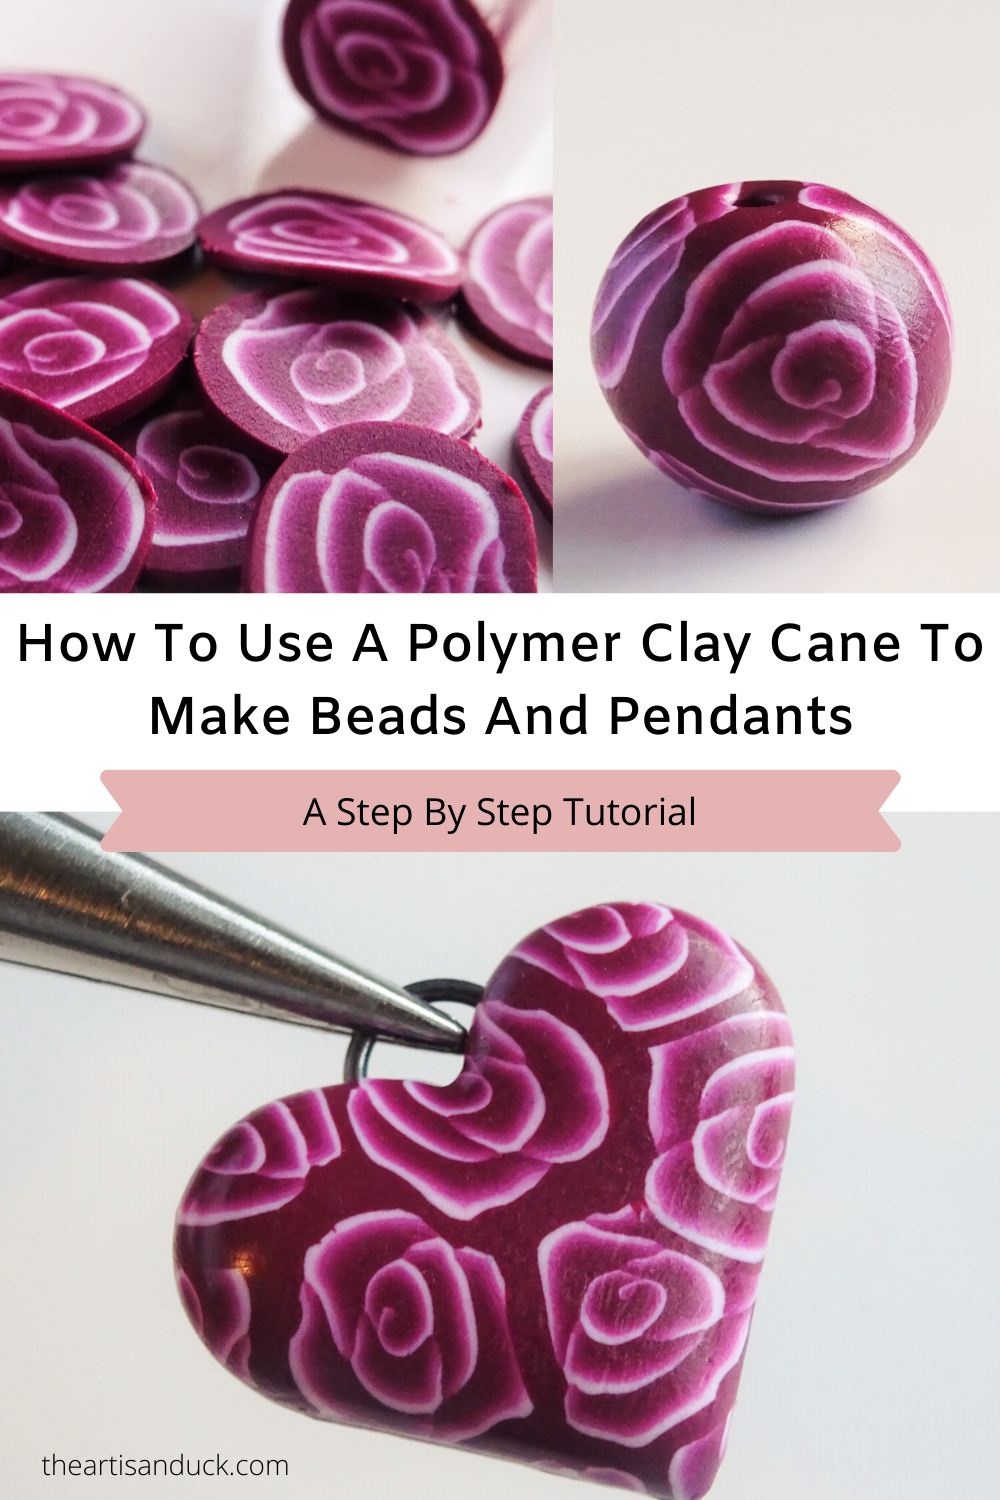 How to use a polymer clay cane to make beads and pendants